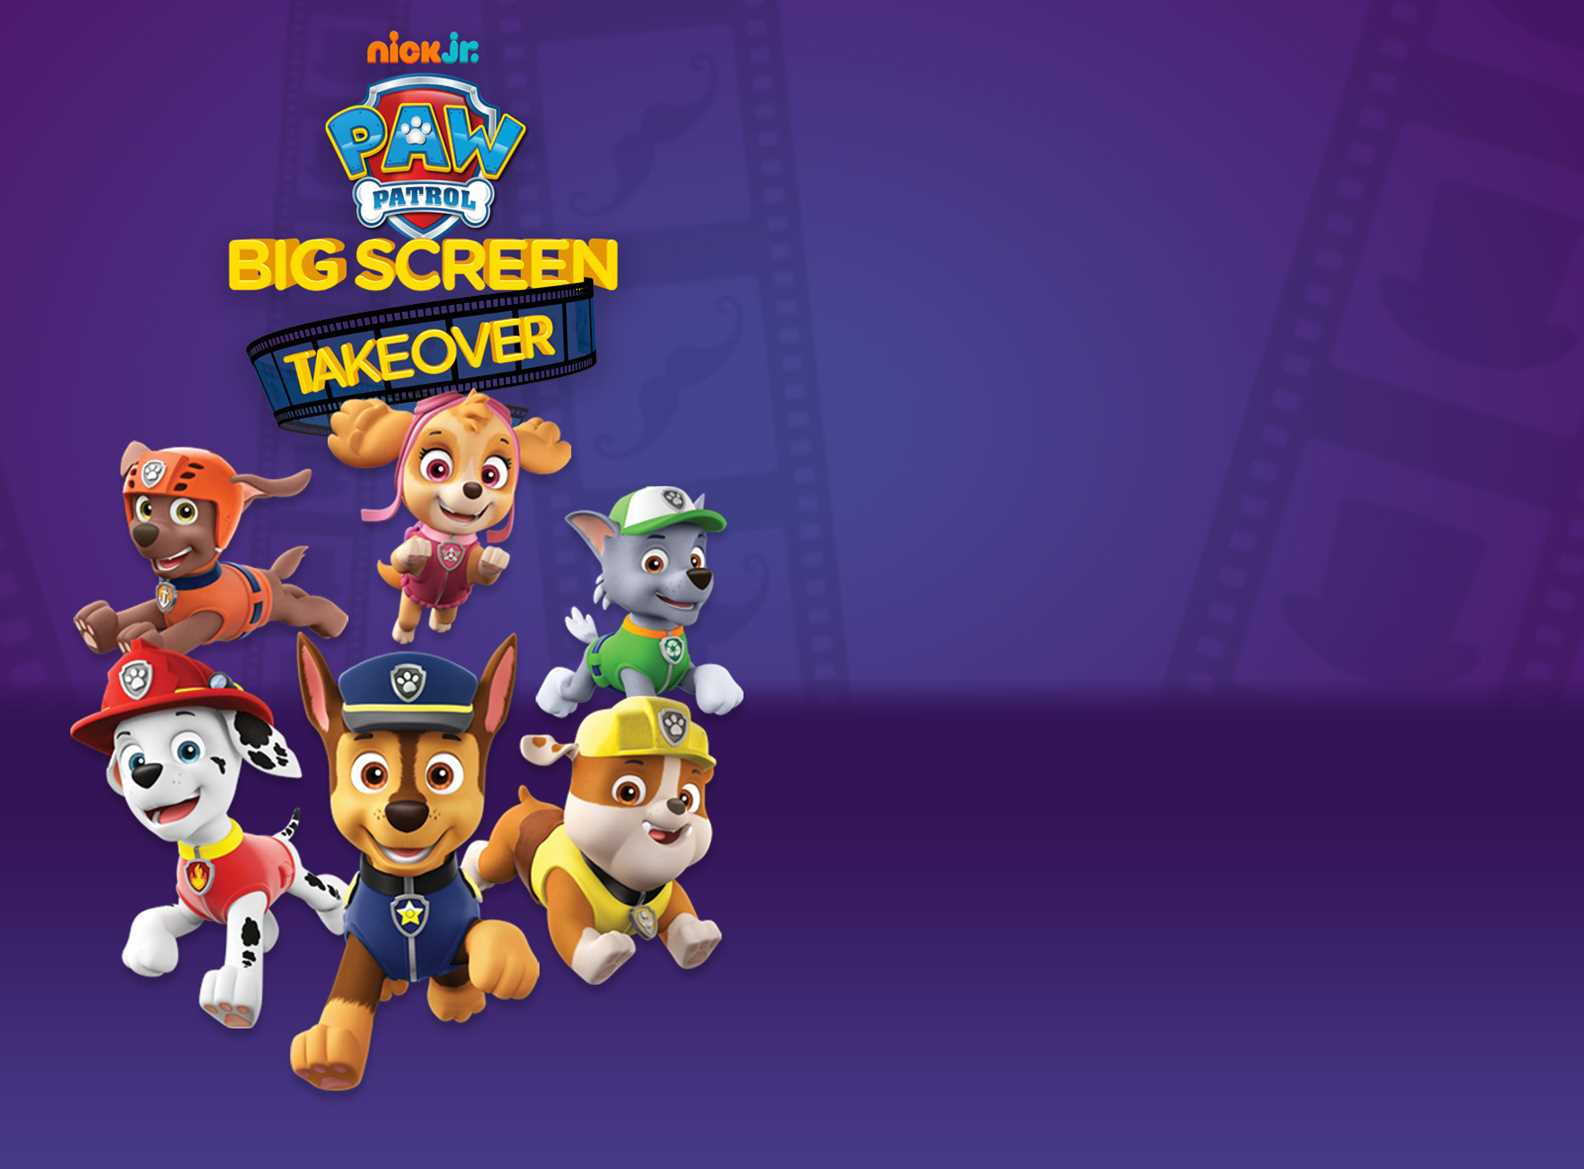 Paw Patrol Big Screen Takeover